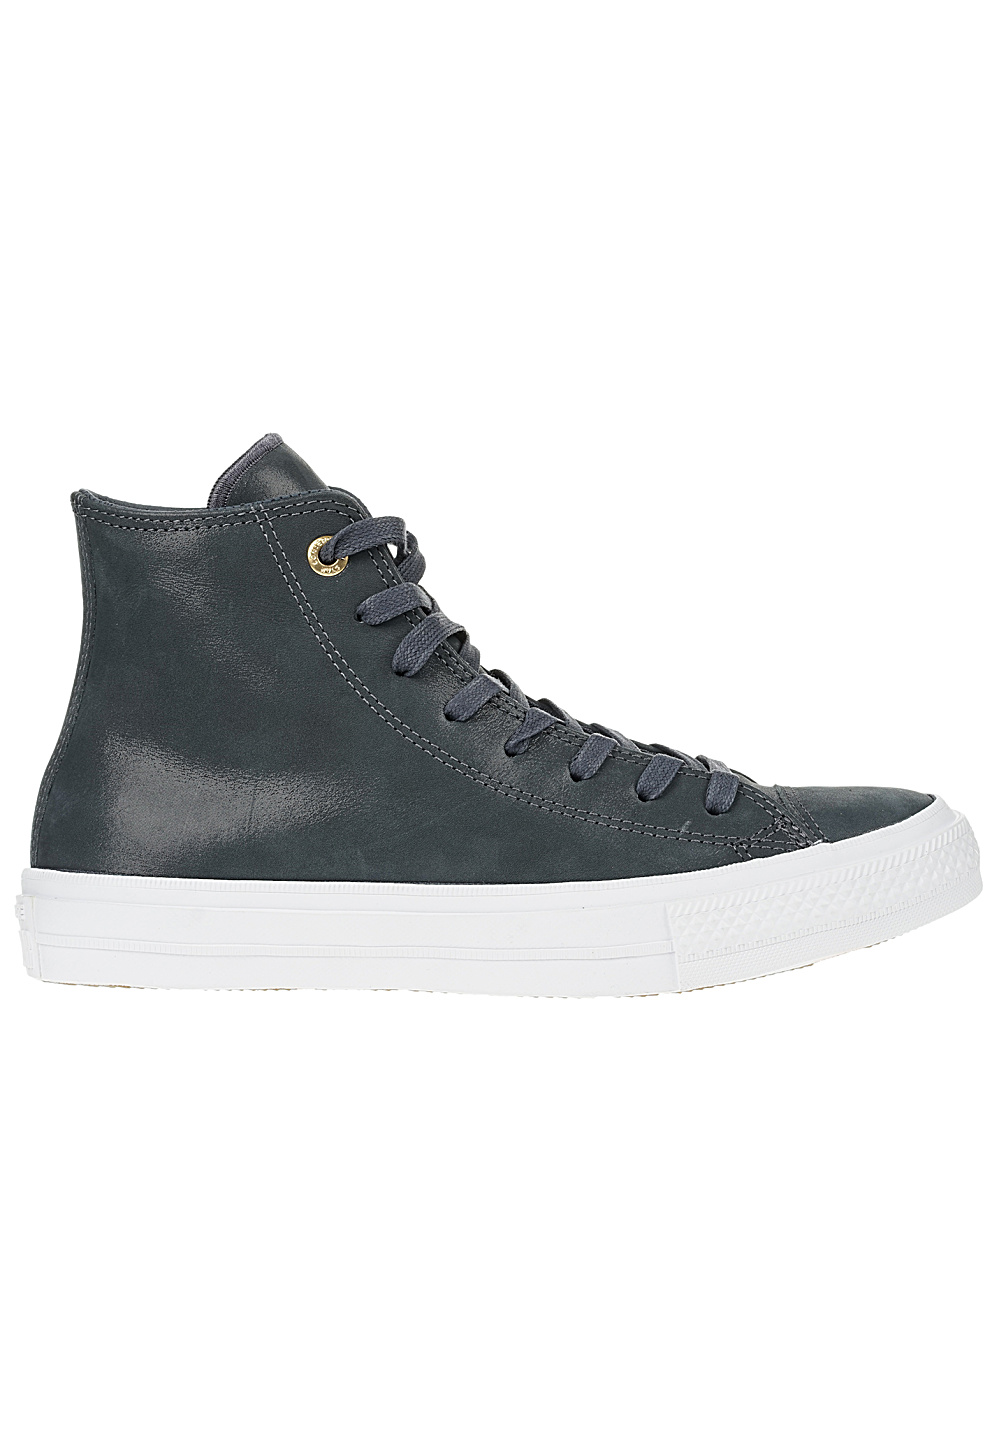 8bc7e1488ae4 Converse Chuck Taylor All Star II Hi - Sneakers for Women - Grey ...